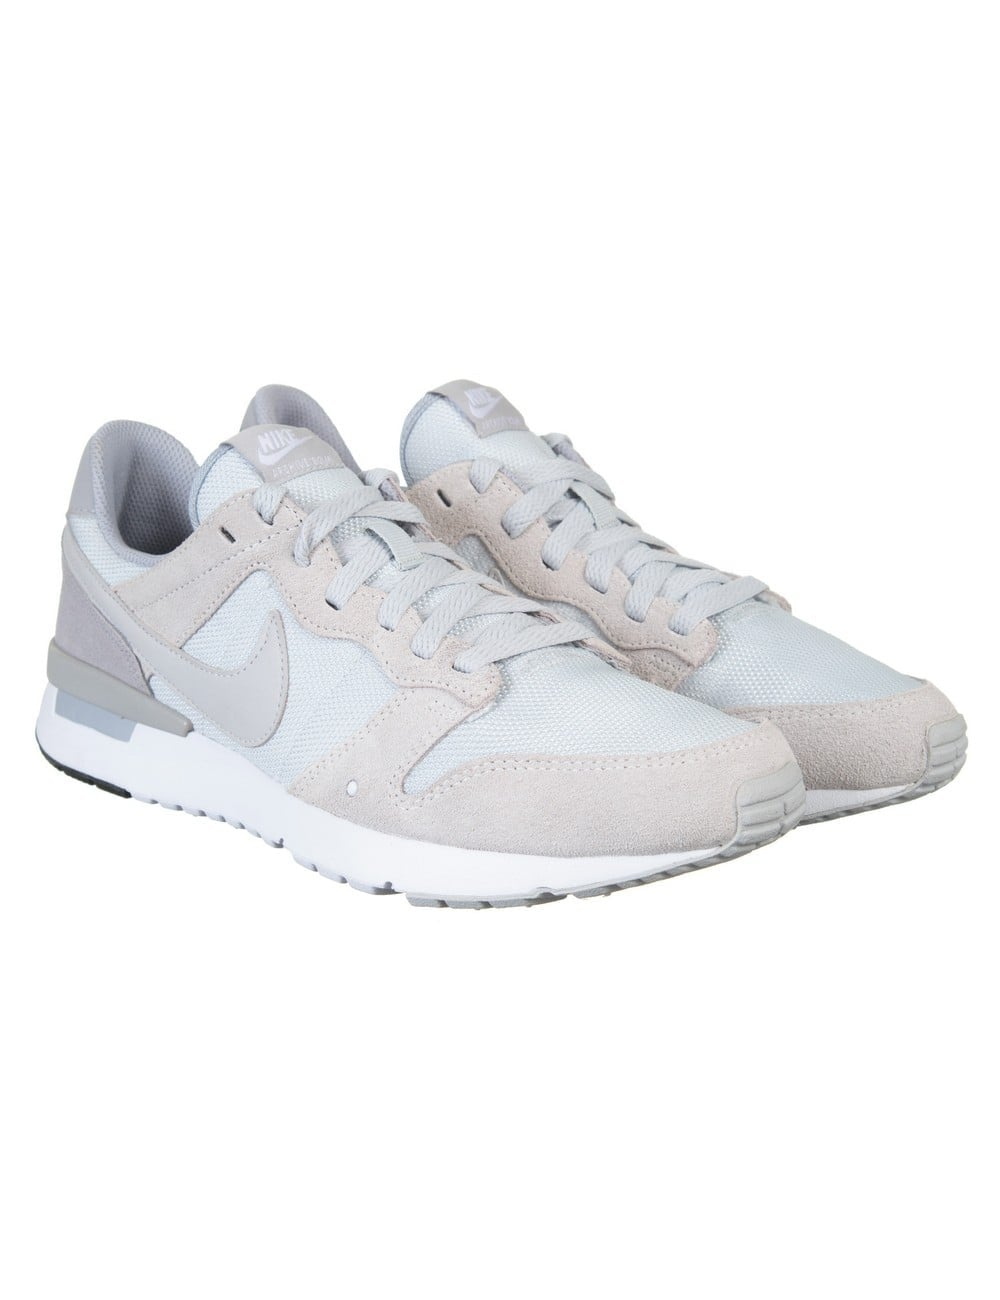 6270496b8a1e Nike Archive  83.M Trainers - Pure Platinum - Footwear from Fat ...